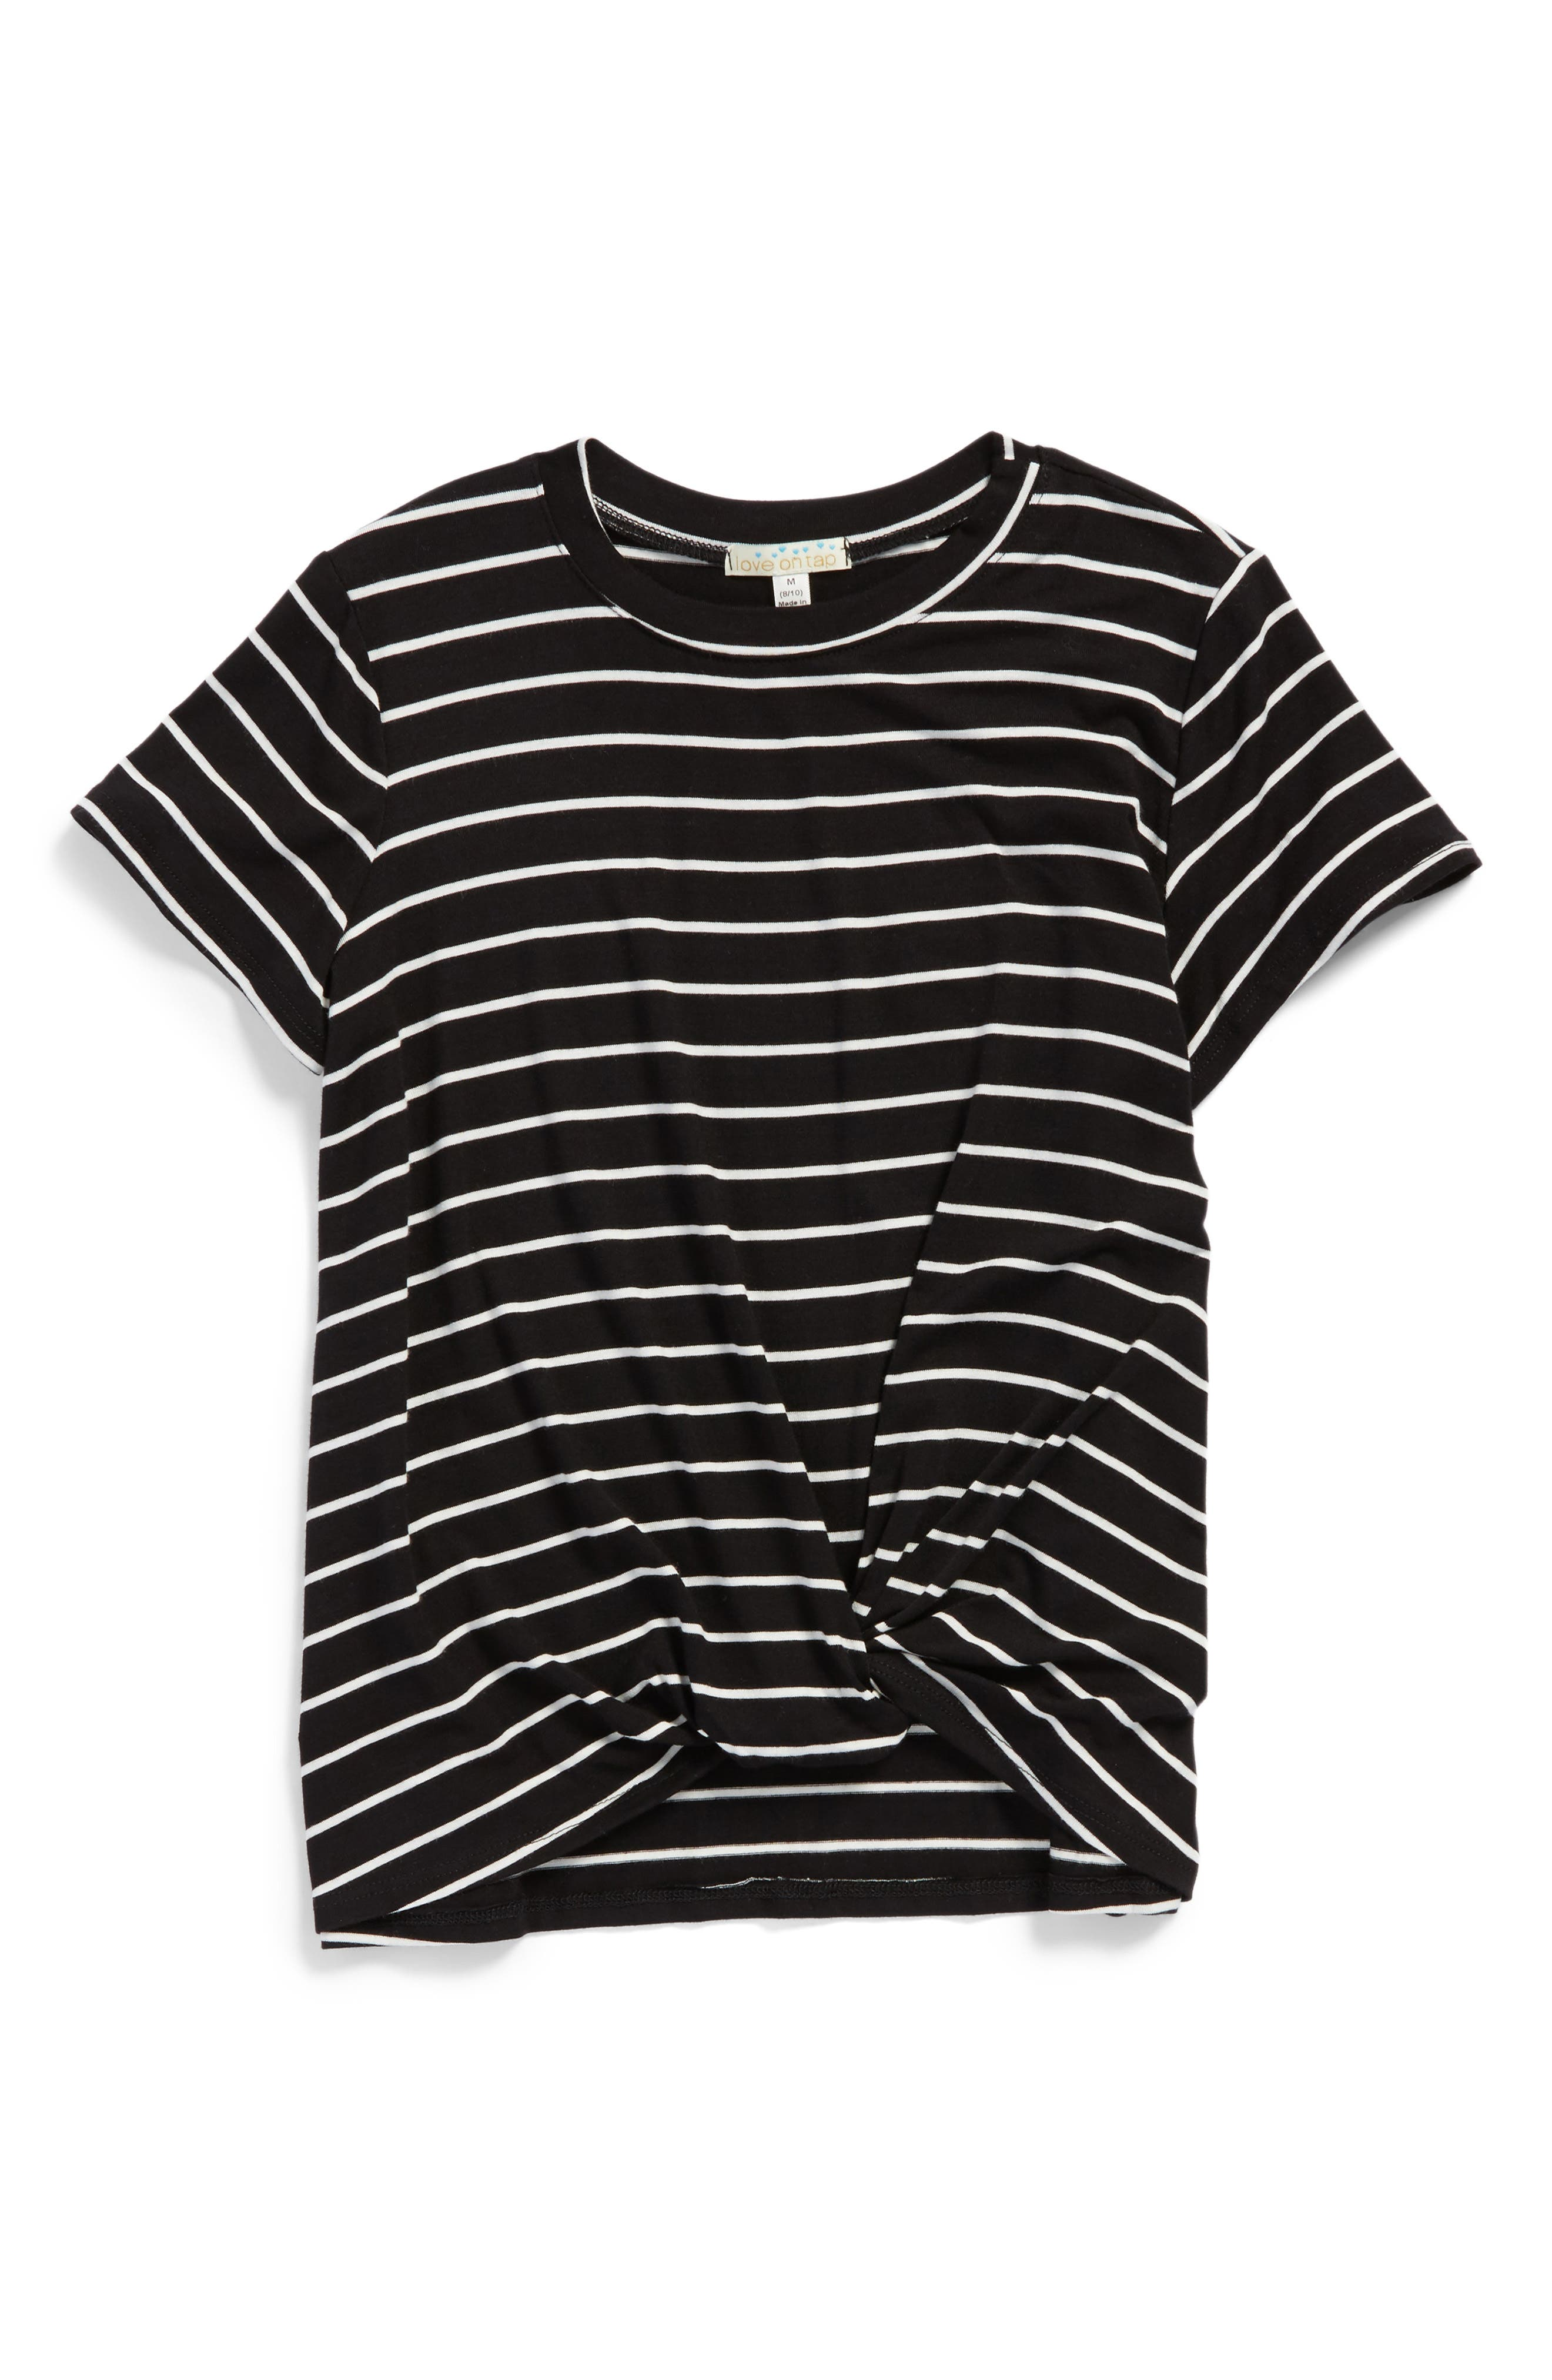 Alternate Image 1 Selected - Love on Tap Knotted Stripe Tee